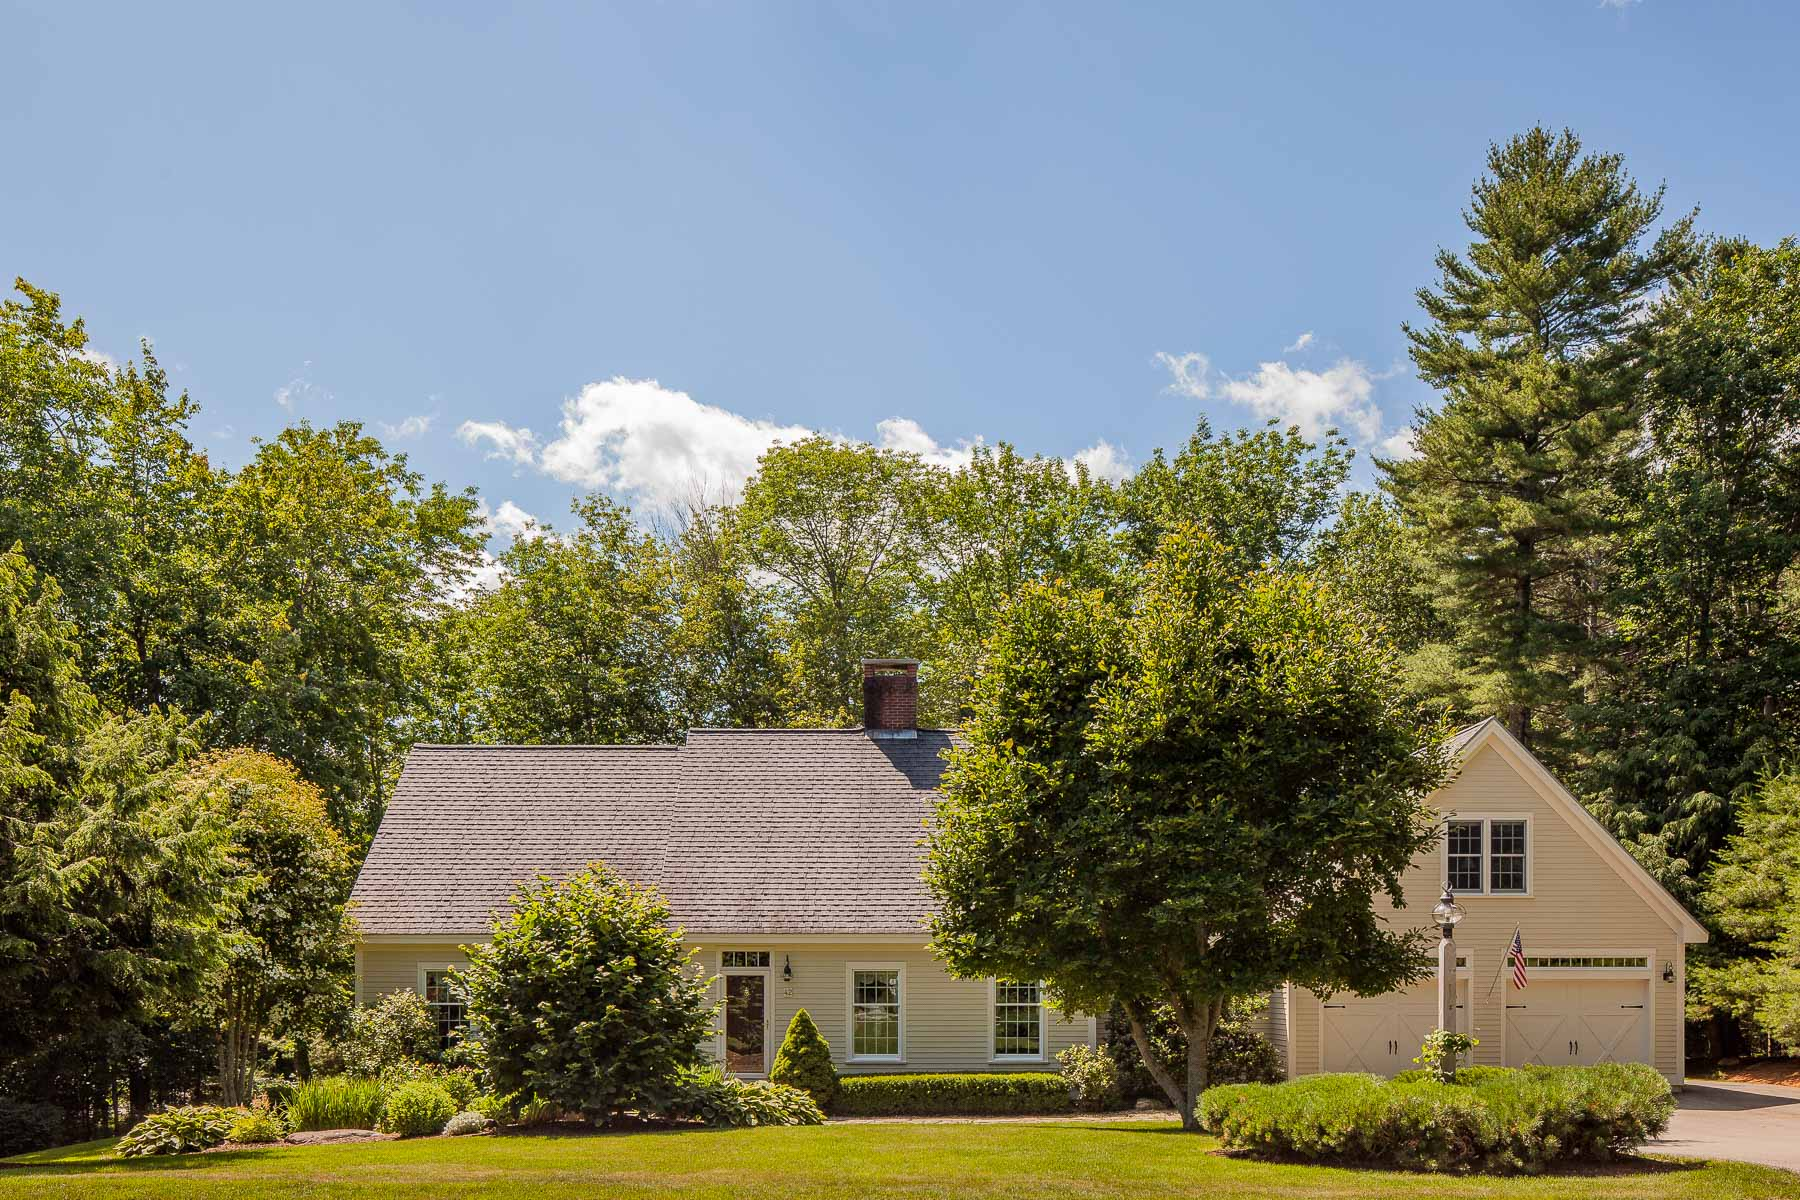 Single Family Home for Sale at 42 Stonehurst Drive Camden, Maine, 04843 United States